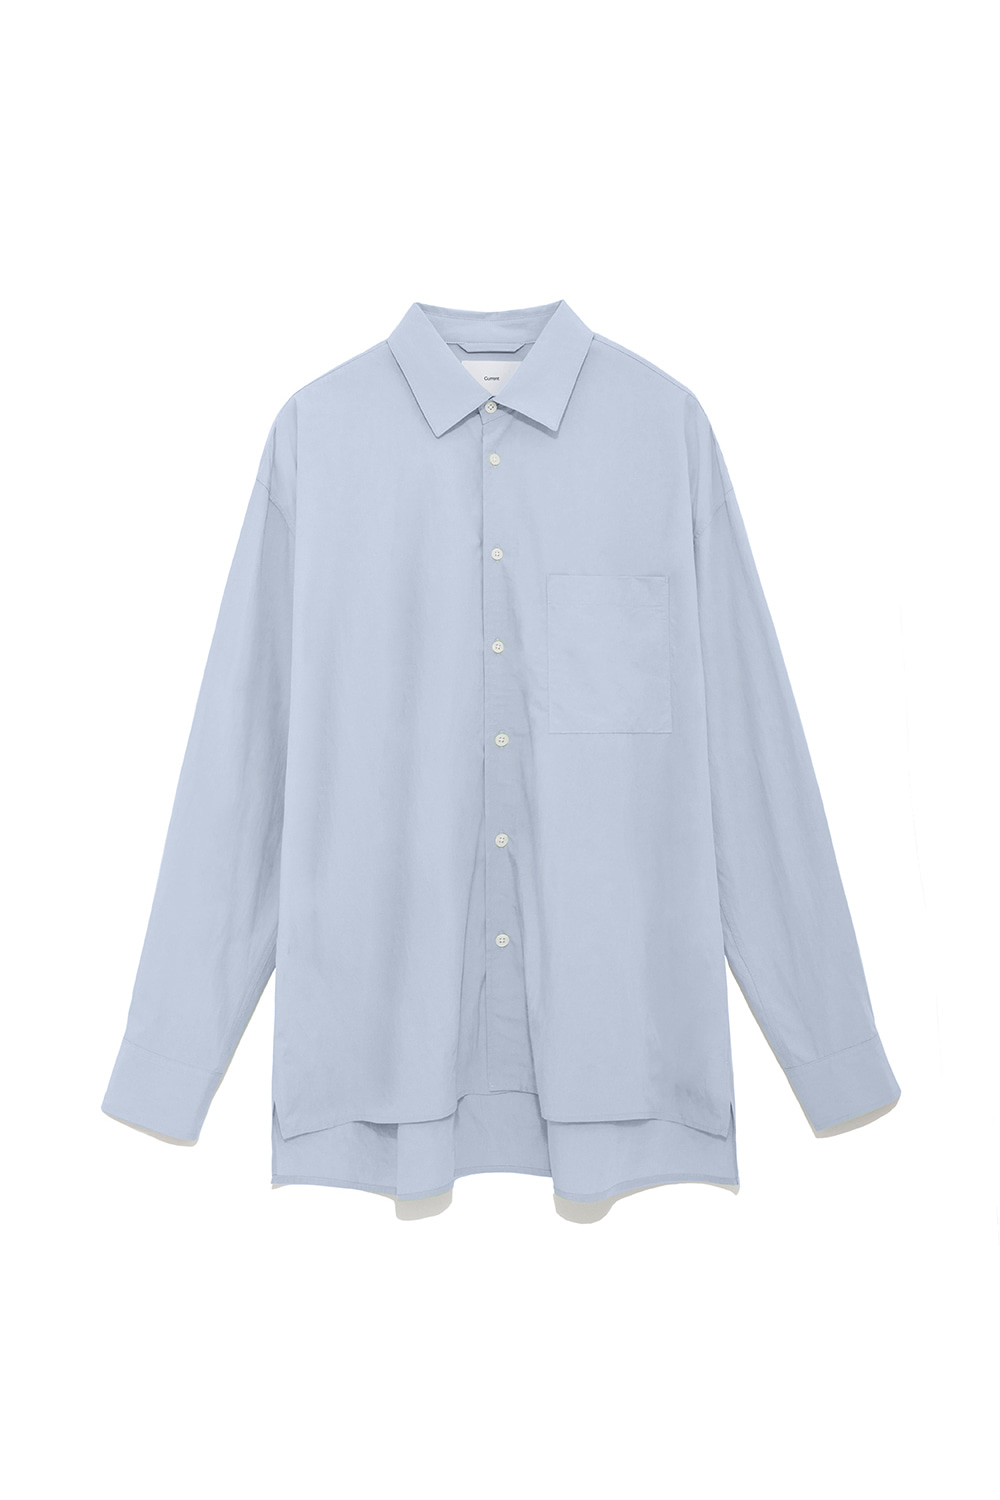 Relax Shirts Men [Light Blue]